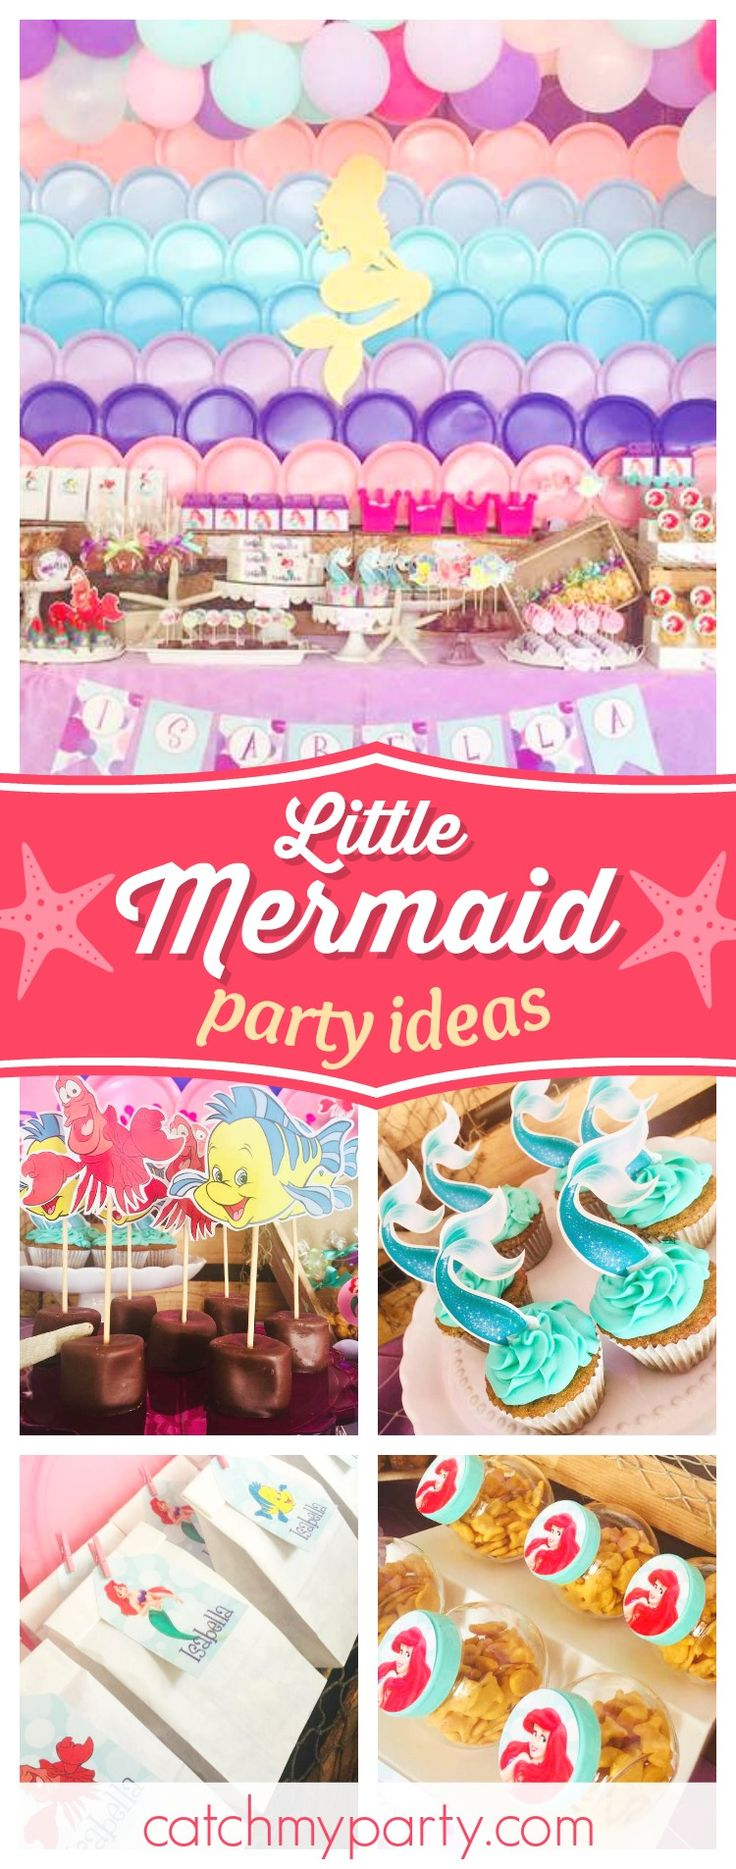 wording0th birthday party invitation%0A Little Mermaid   Birthday   Little Isabella Mermaid birthday party